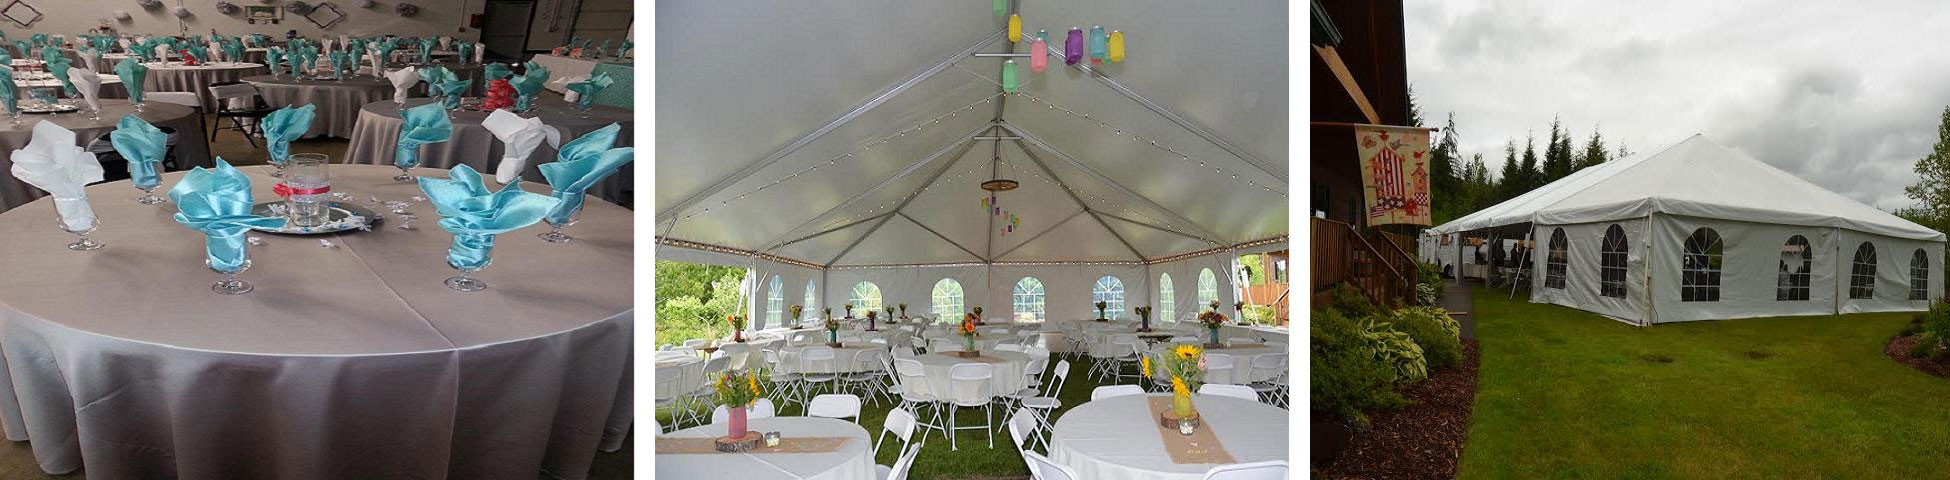 event rentals in Olympia Washington, Tacoma, Tumwater, Lakewood, Centralia WA